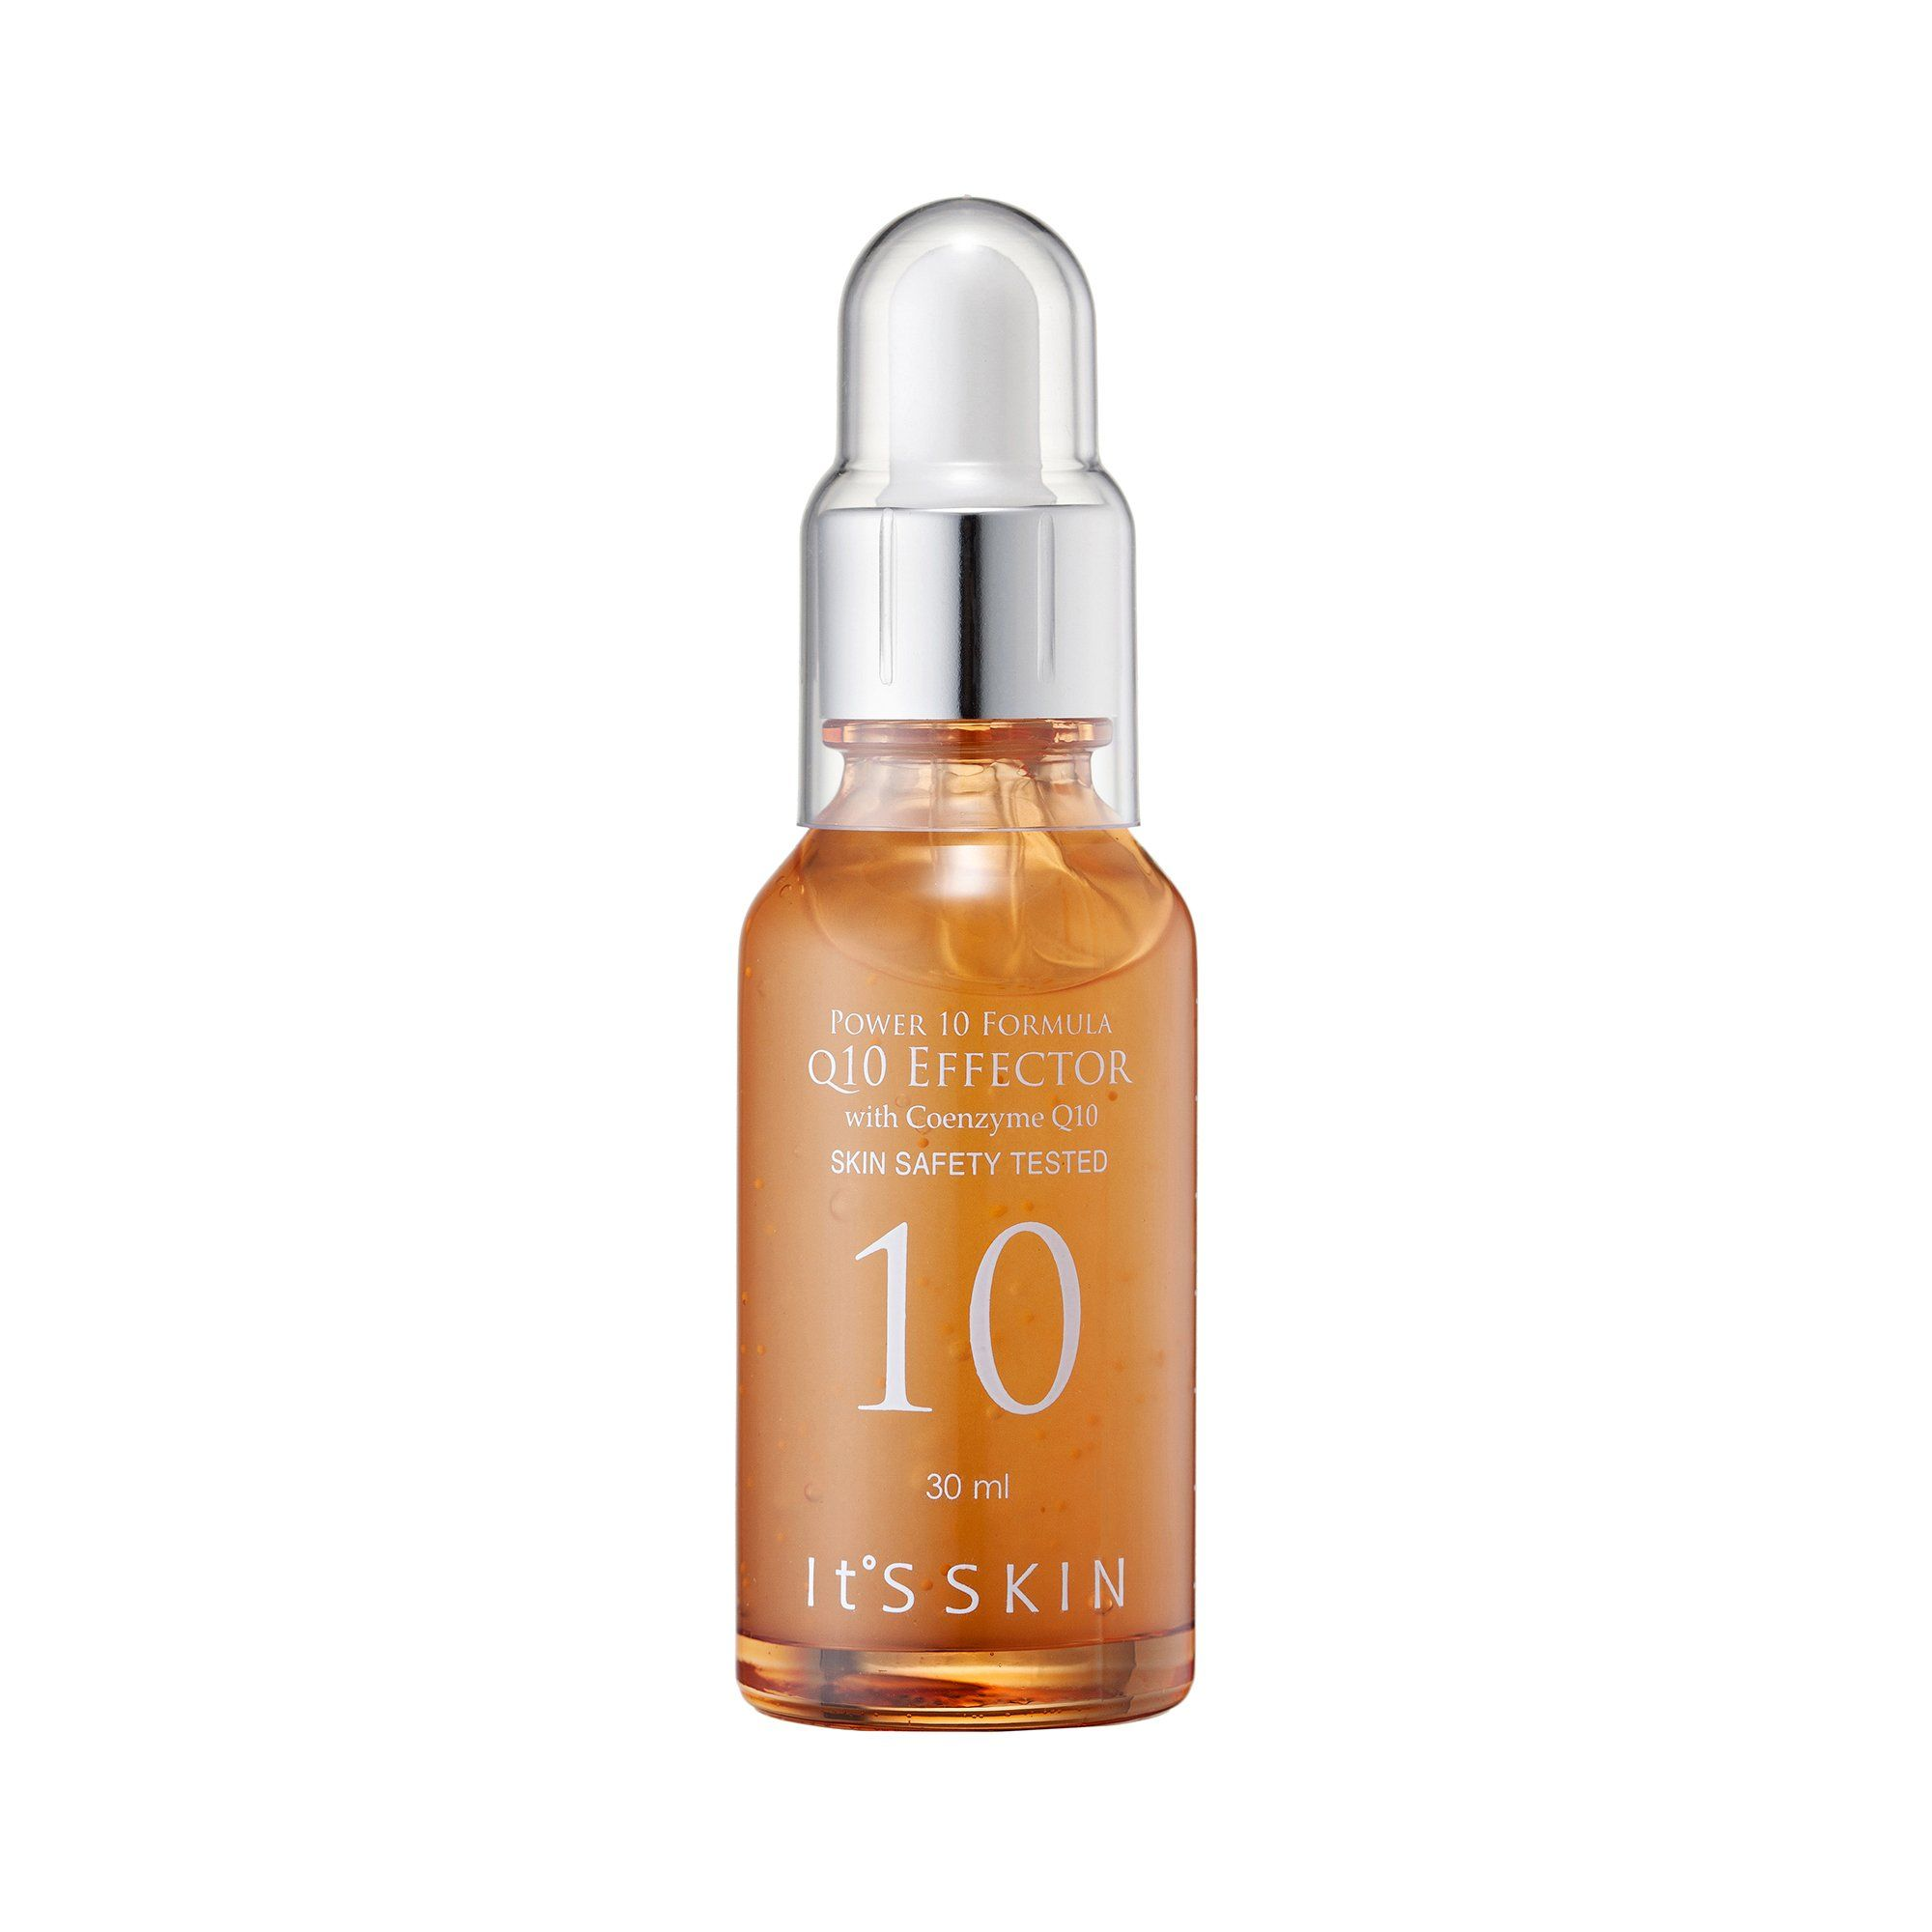 Health & Beauty > Personal Care > Cosmetics > Skin Care > Lotion & Moisturizer - Power 10 Formula Q10 Effector Serum Do Twarzy 30 Ml